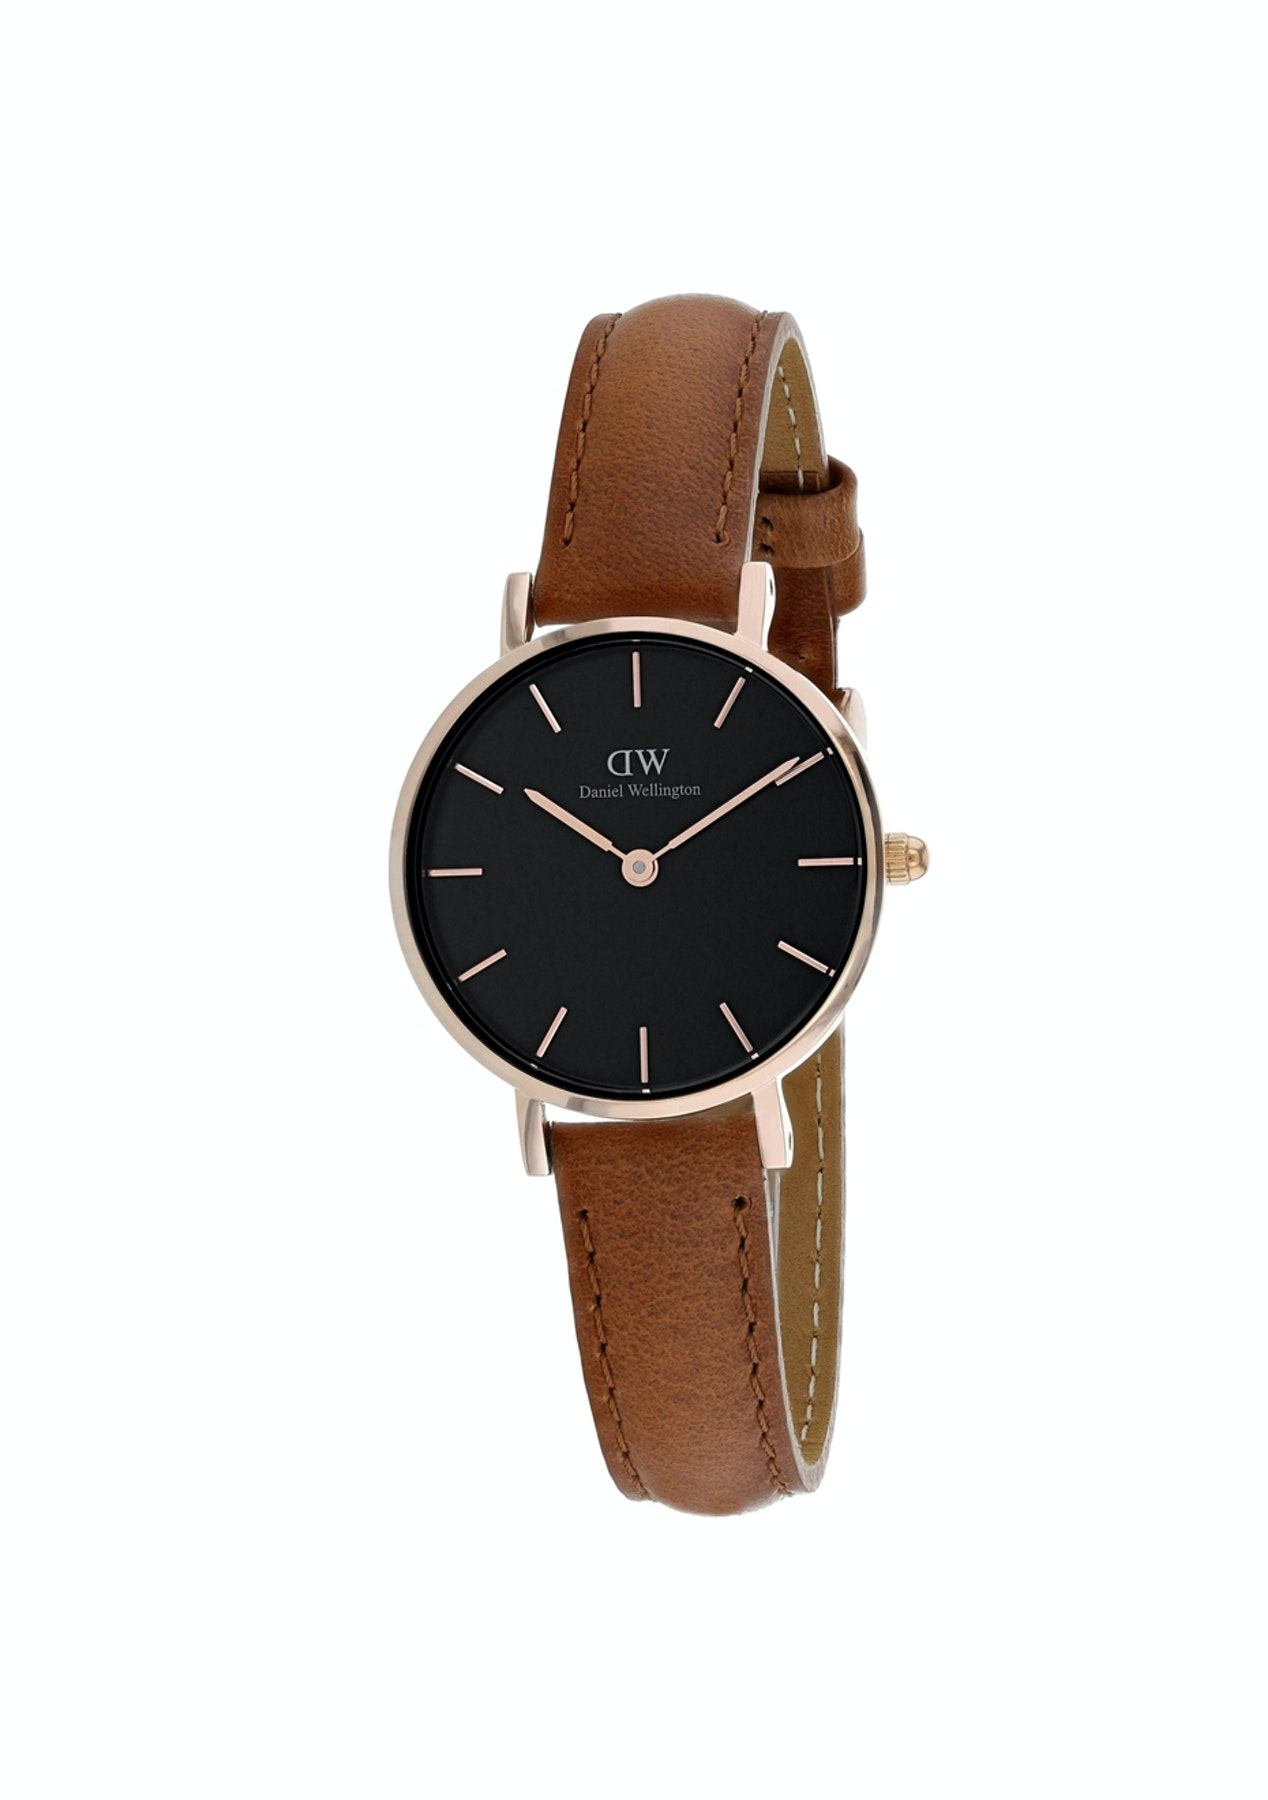 31d7099515ee Daniel Wellington Classic Petite Durham 28mm - Black Brown - Ted Baker  Watches + More - Onceit